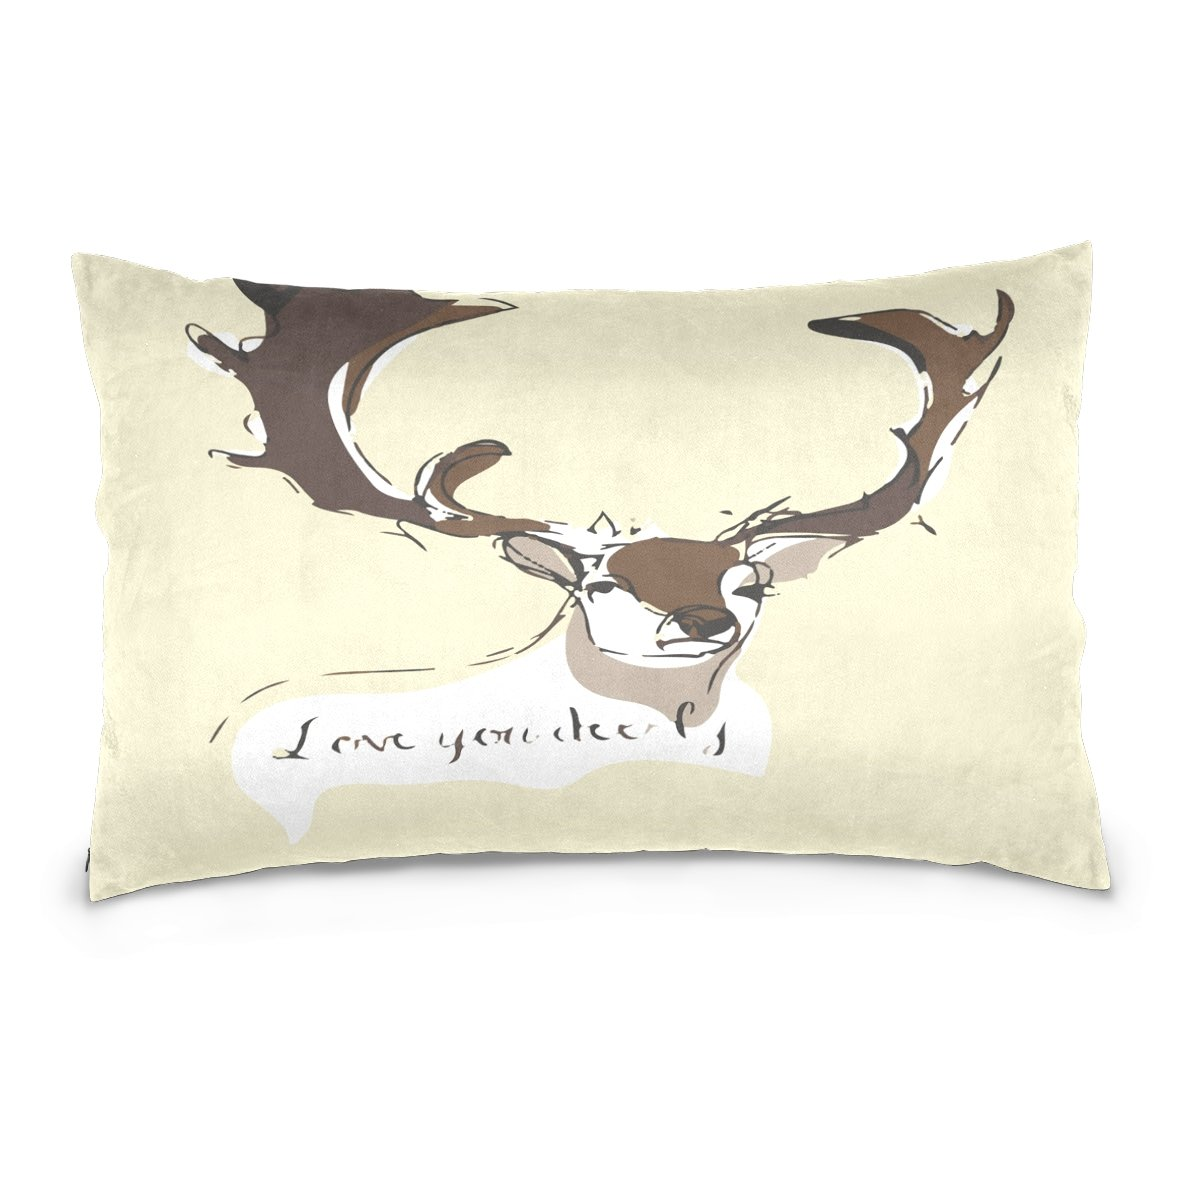 Pillow Covers Pillow Protectors Bed Bug Dust Mite Resistant Standard Pillow Cases Cotton Sateen Allergy Proof Soft Quality Covers with Animal Elk Print for Bedding